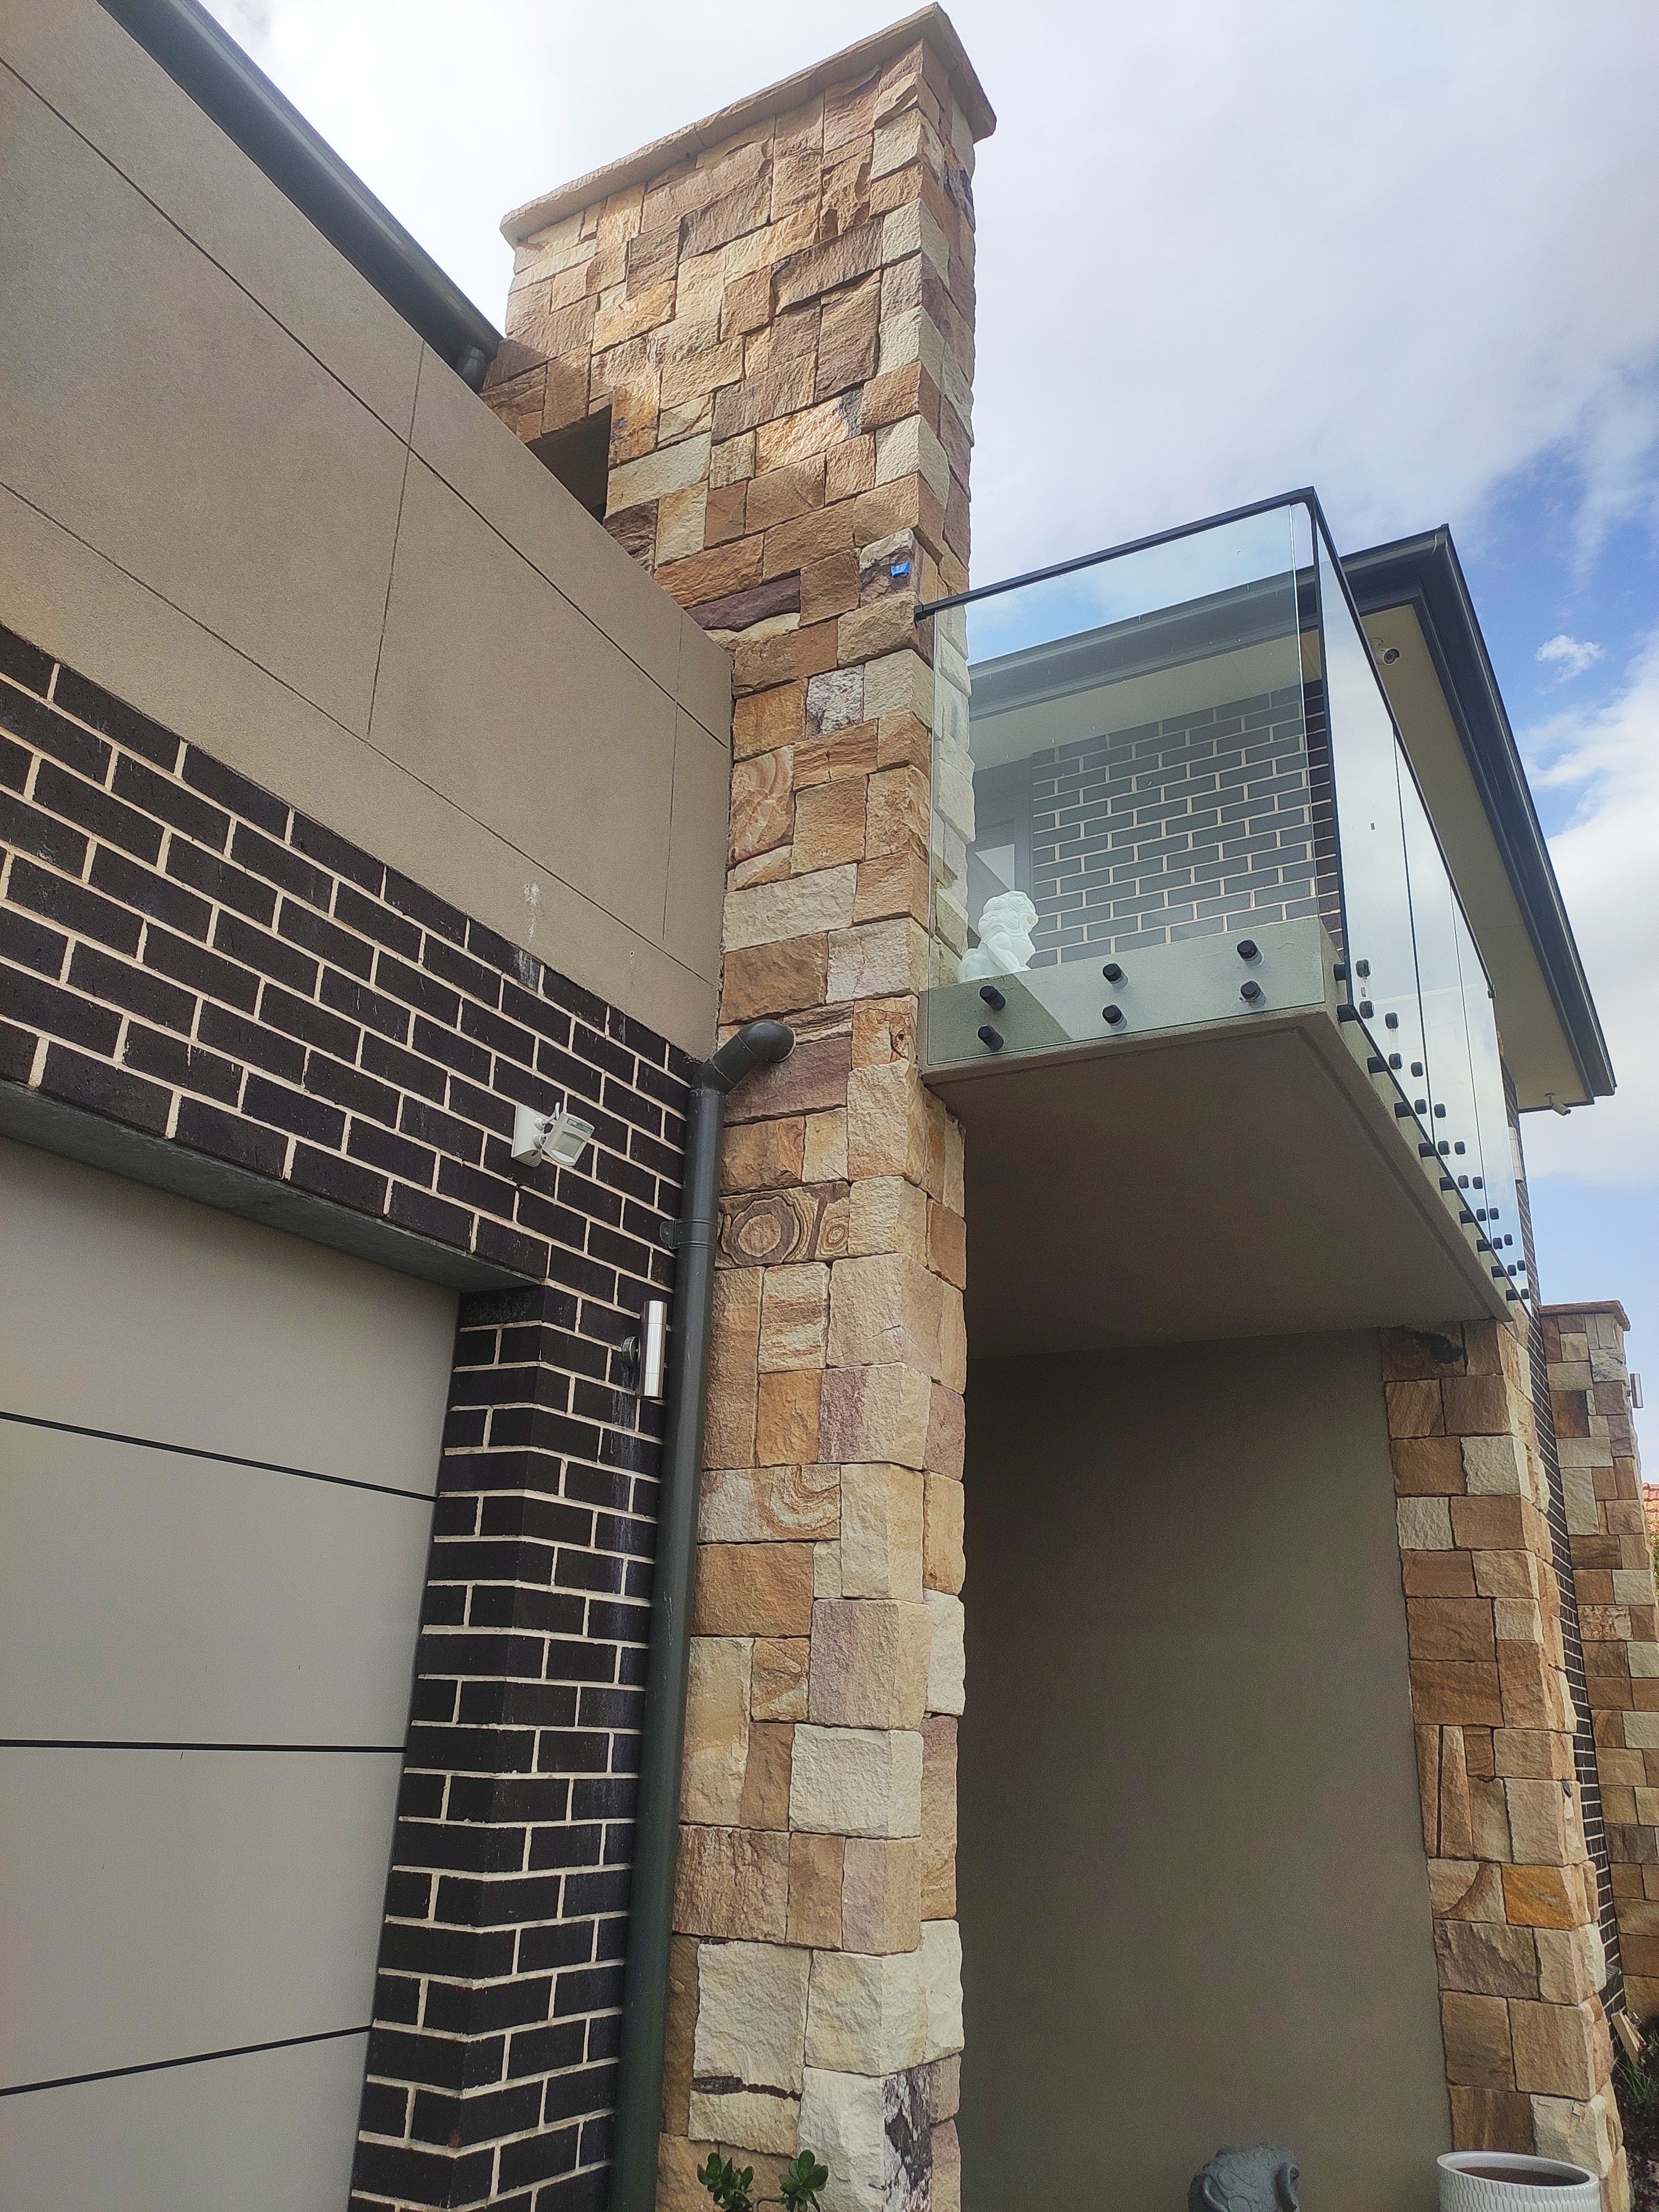 House wall project using Aussietecture Colonial Ranch sandstone walling